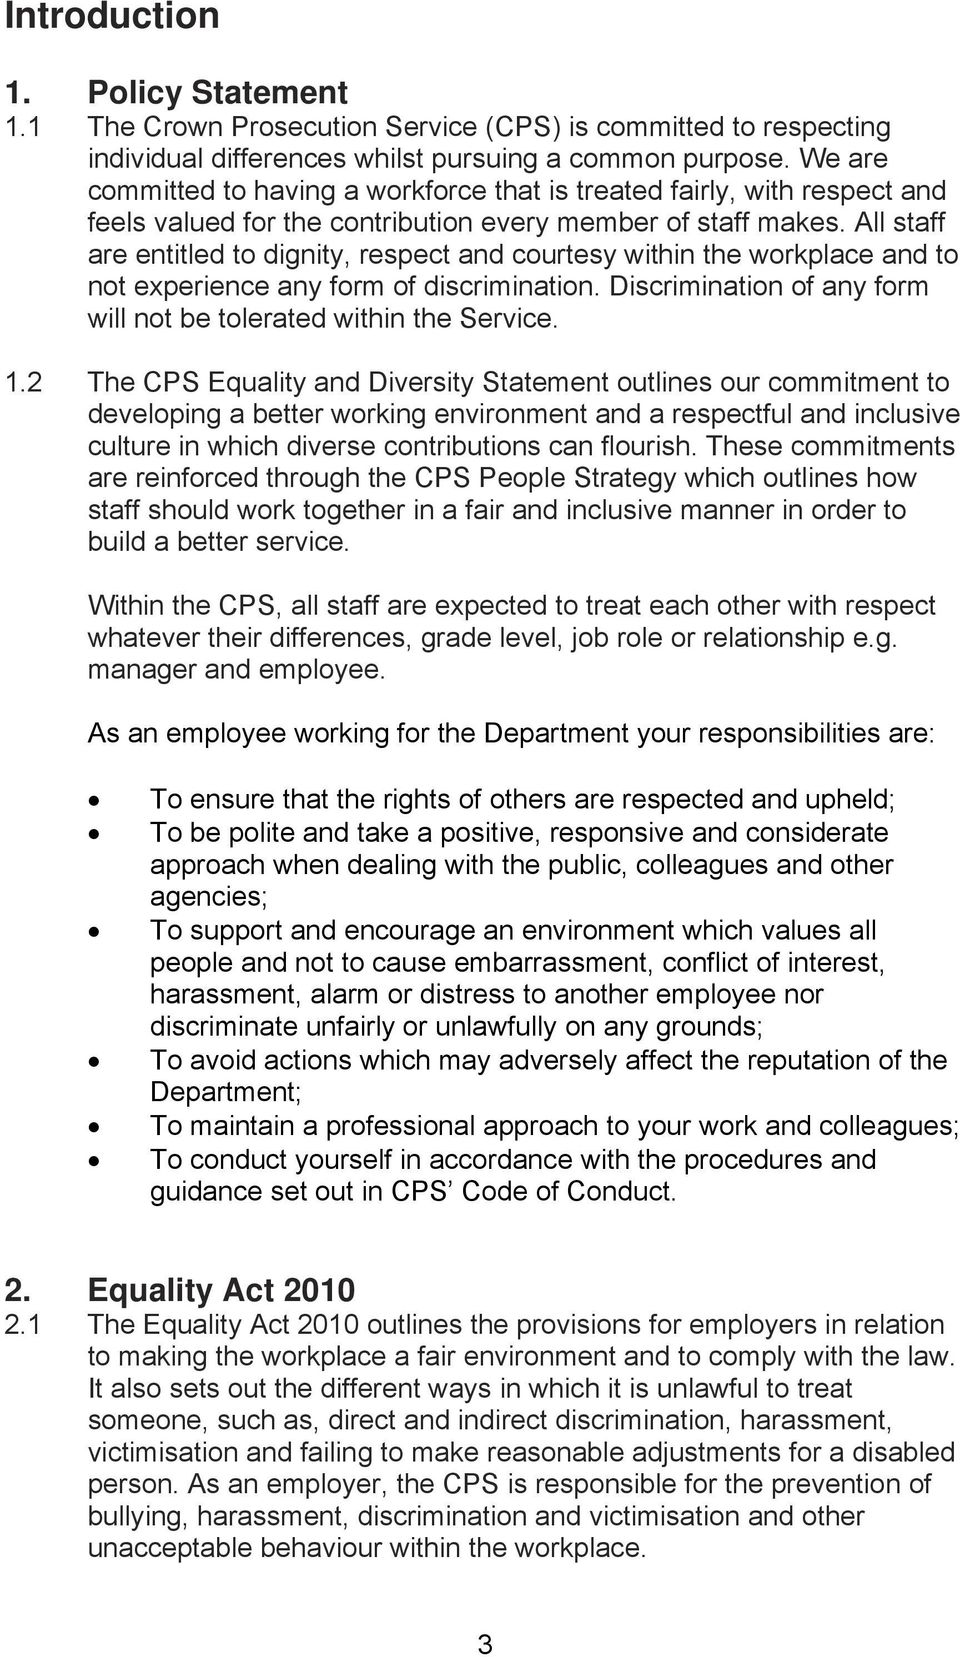 All staff are entitled to dignity, respect and courtesy within the workplace and to not experience any form of discrimination. Discrimination of any form will not be tolerated within the Service. 1.